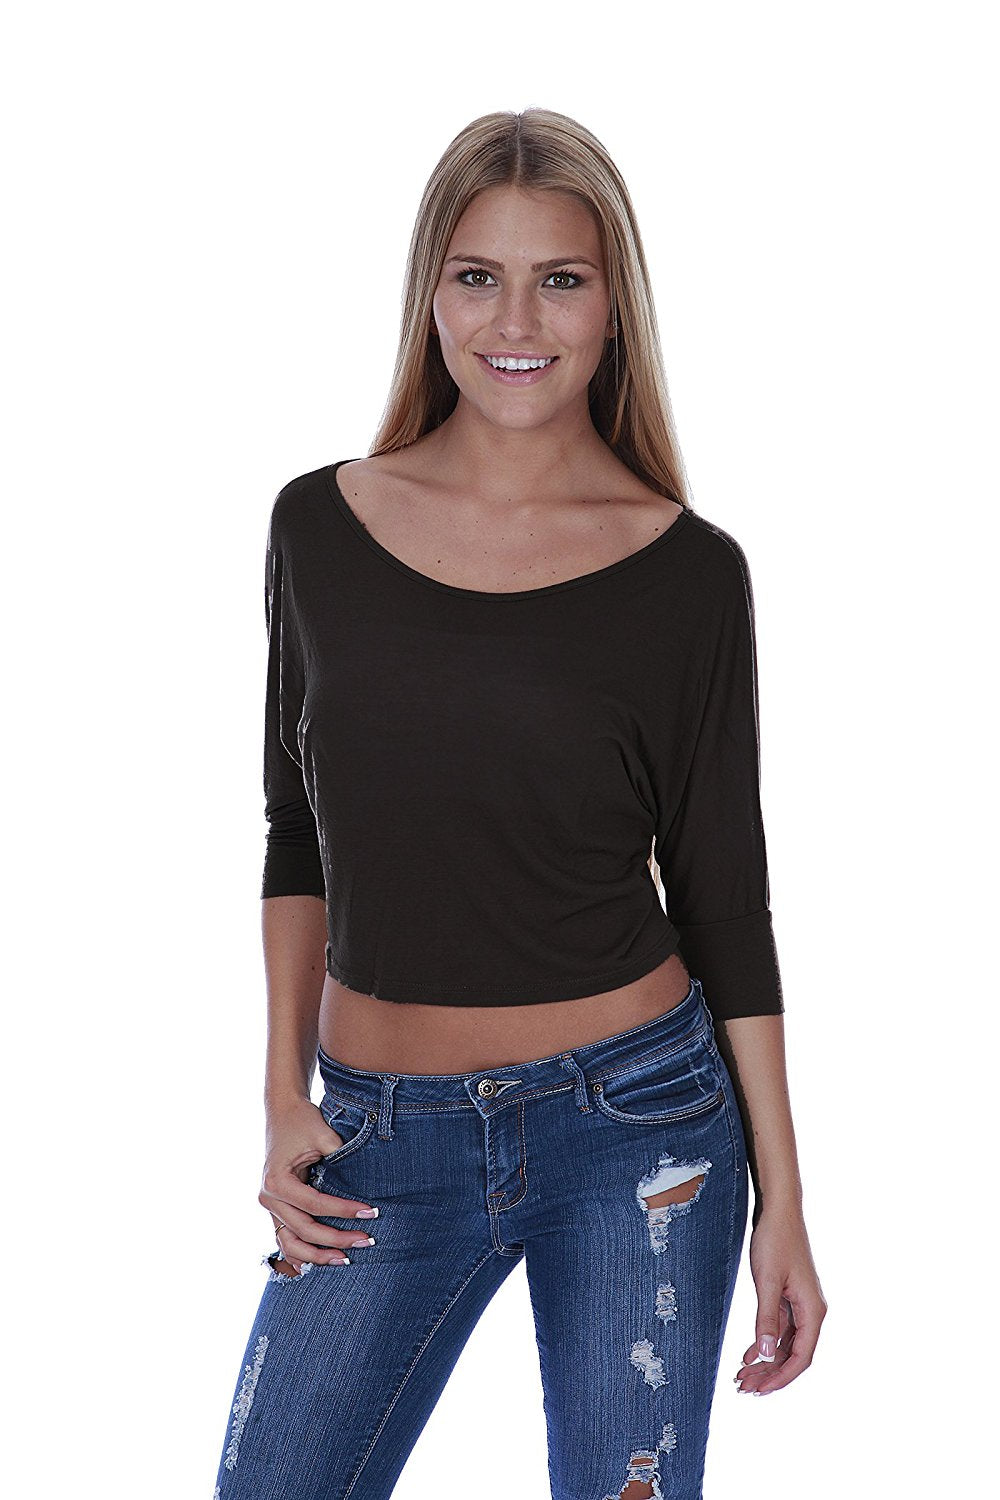 Hollywood Star Fashion Women's 3/4 Sleeves Over Shoulder Batwing Top